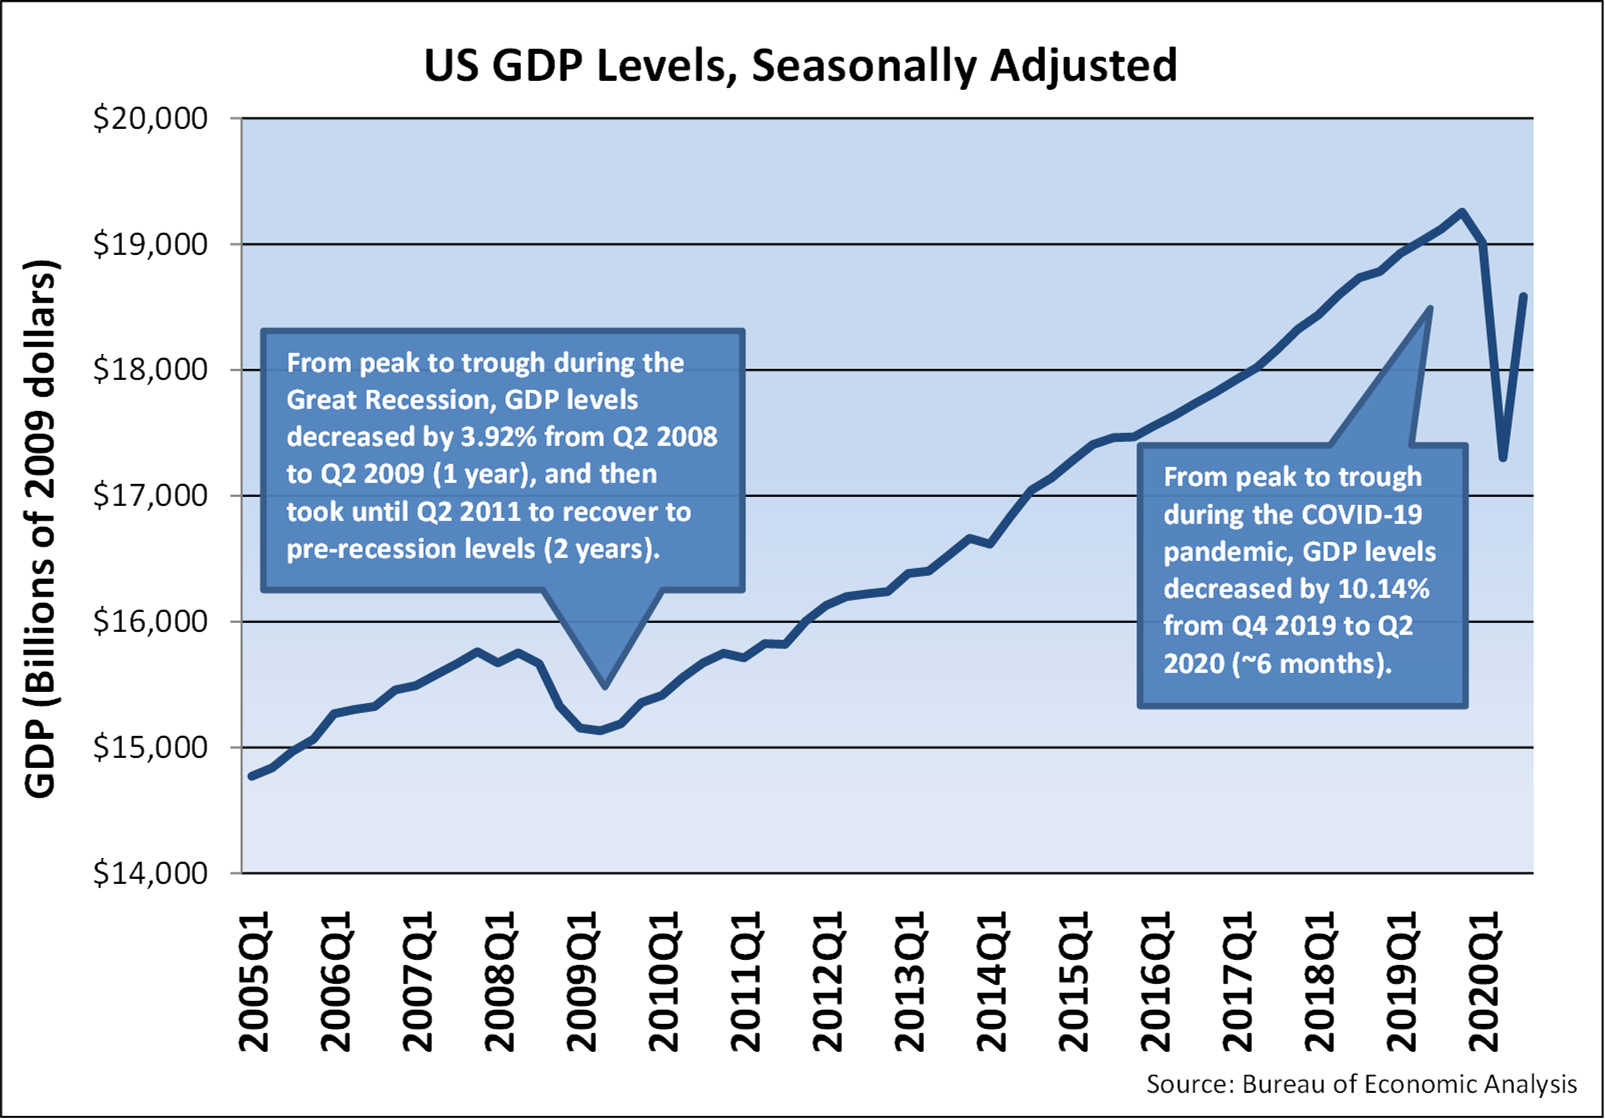 Line Graph of US GDP Levels, Seasonally Adjusted